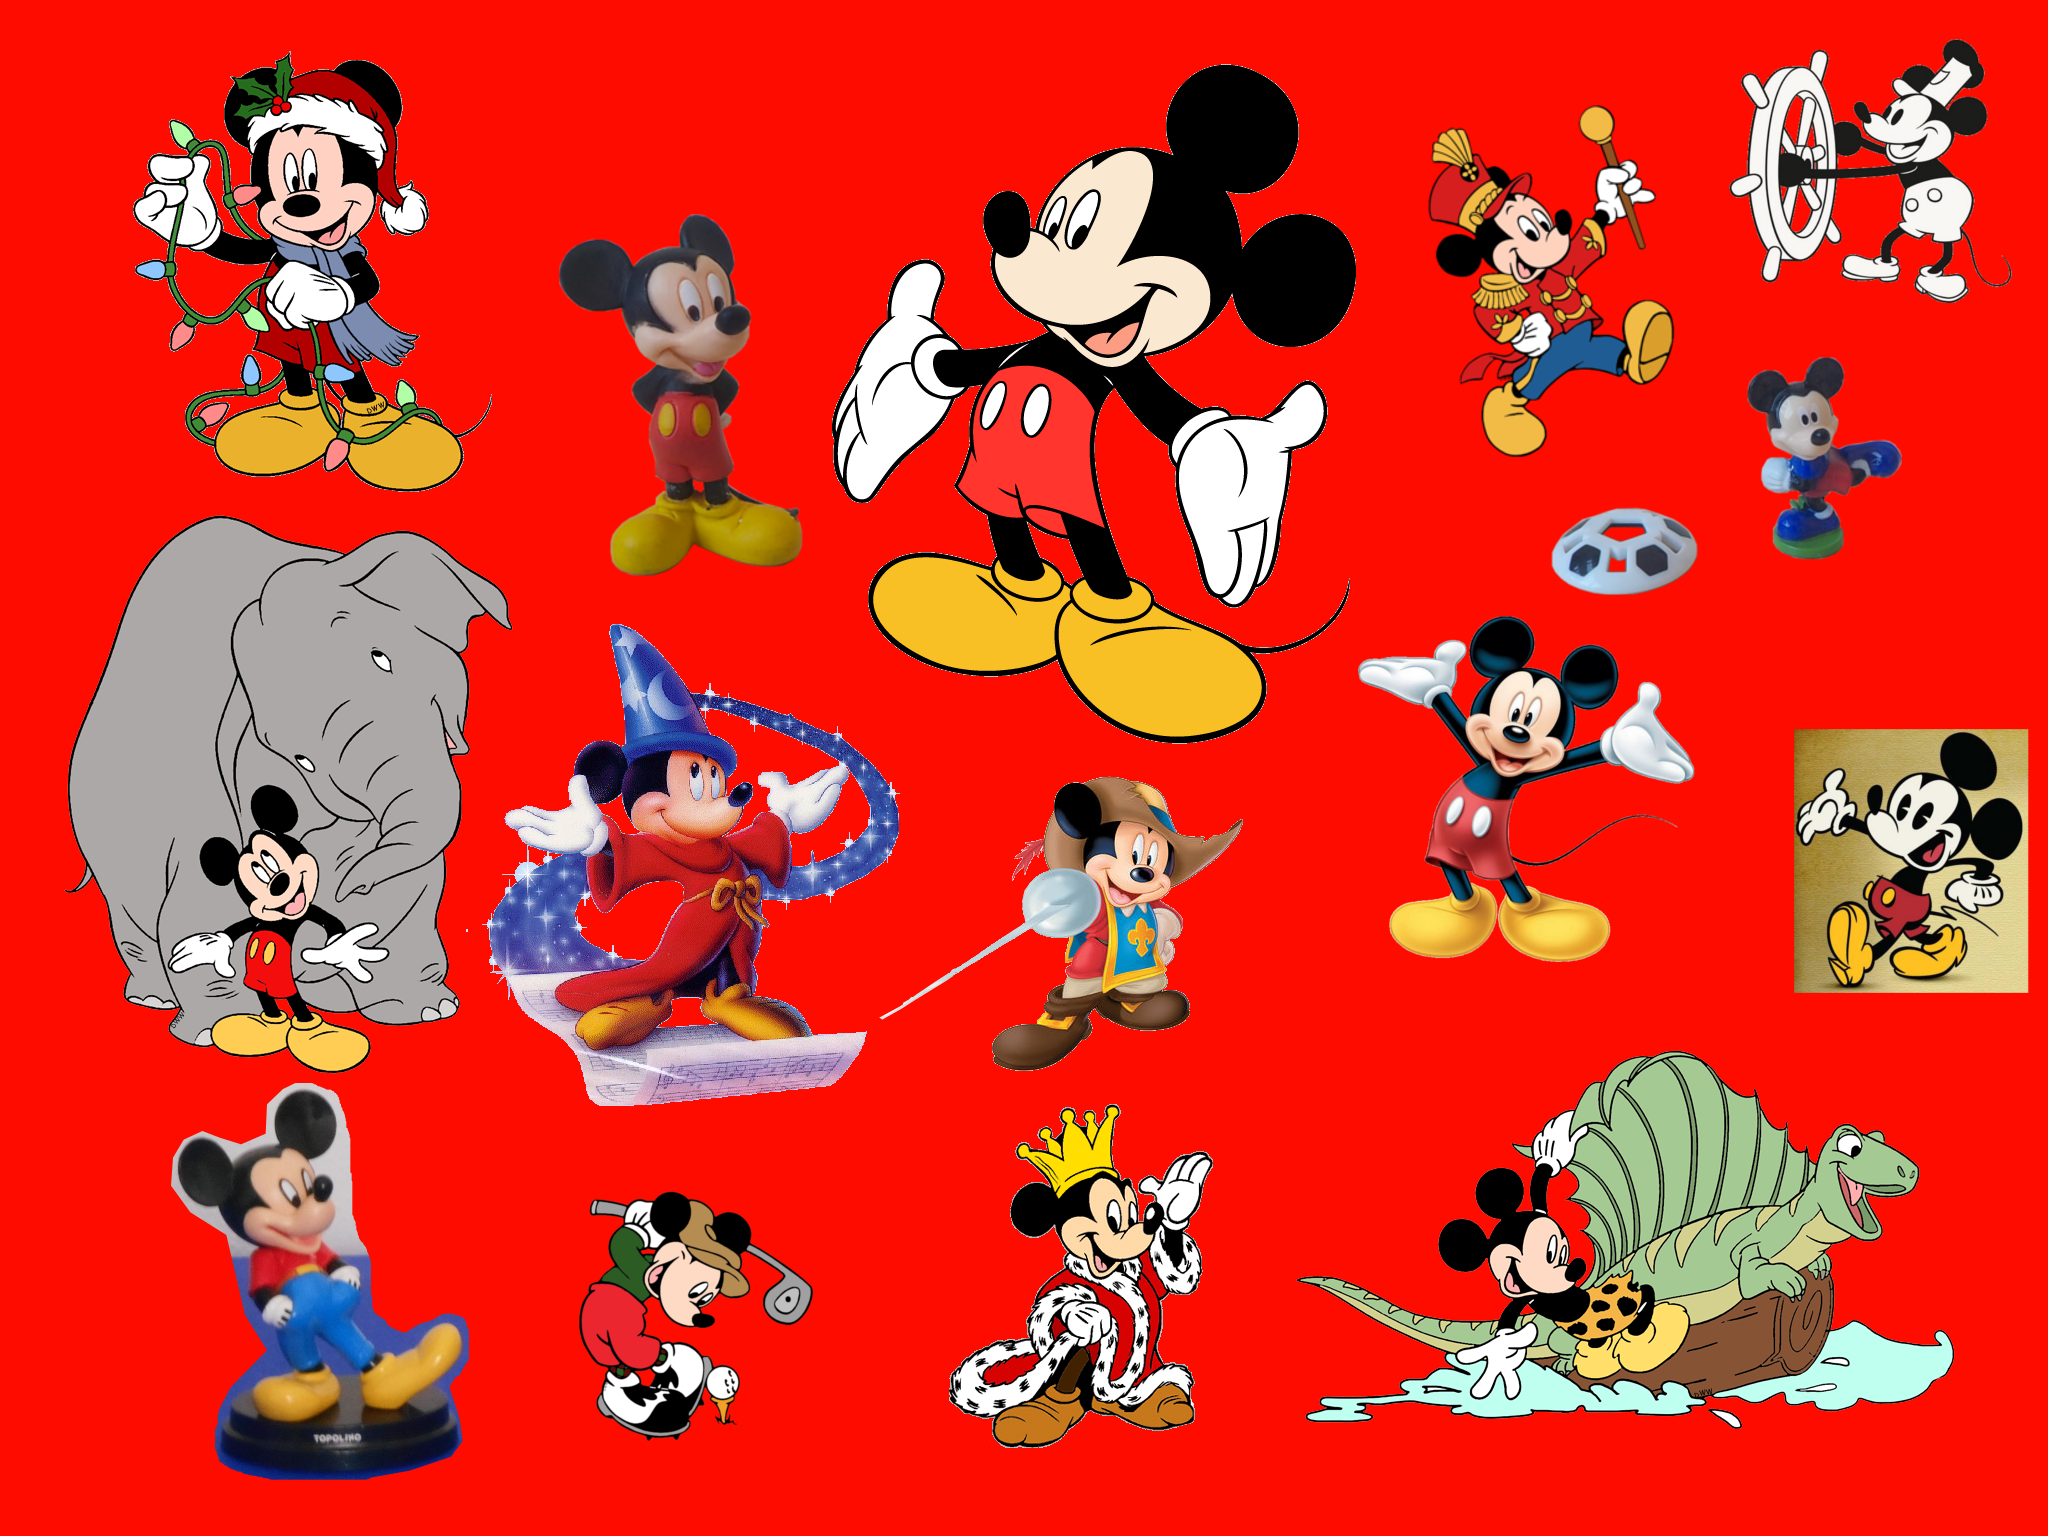 Mickey Mouse Images Wallpaper Topolino Hd Wallpaper And Background